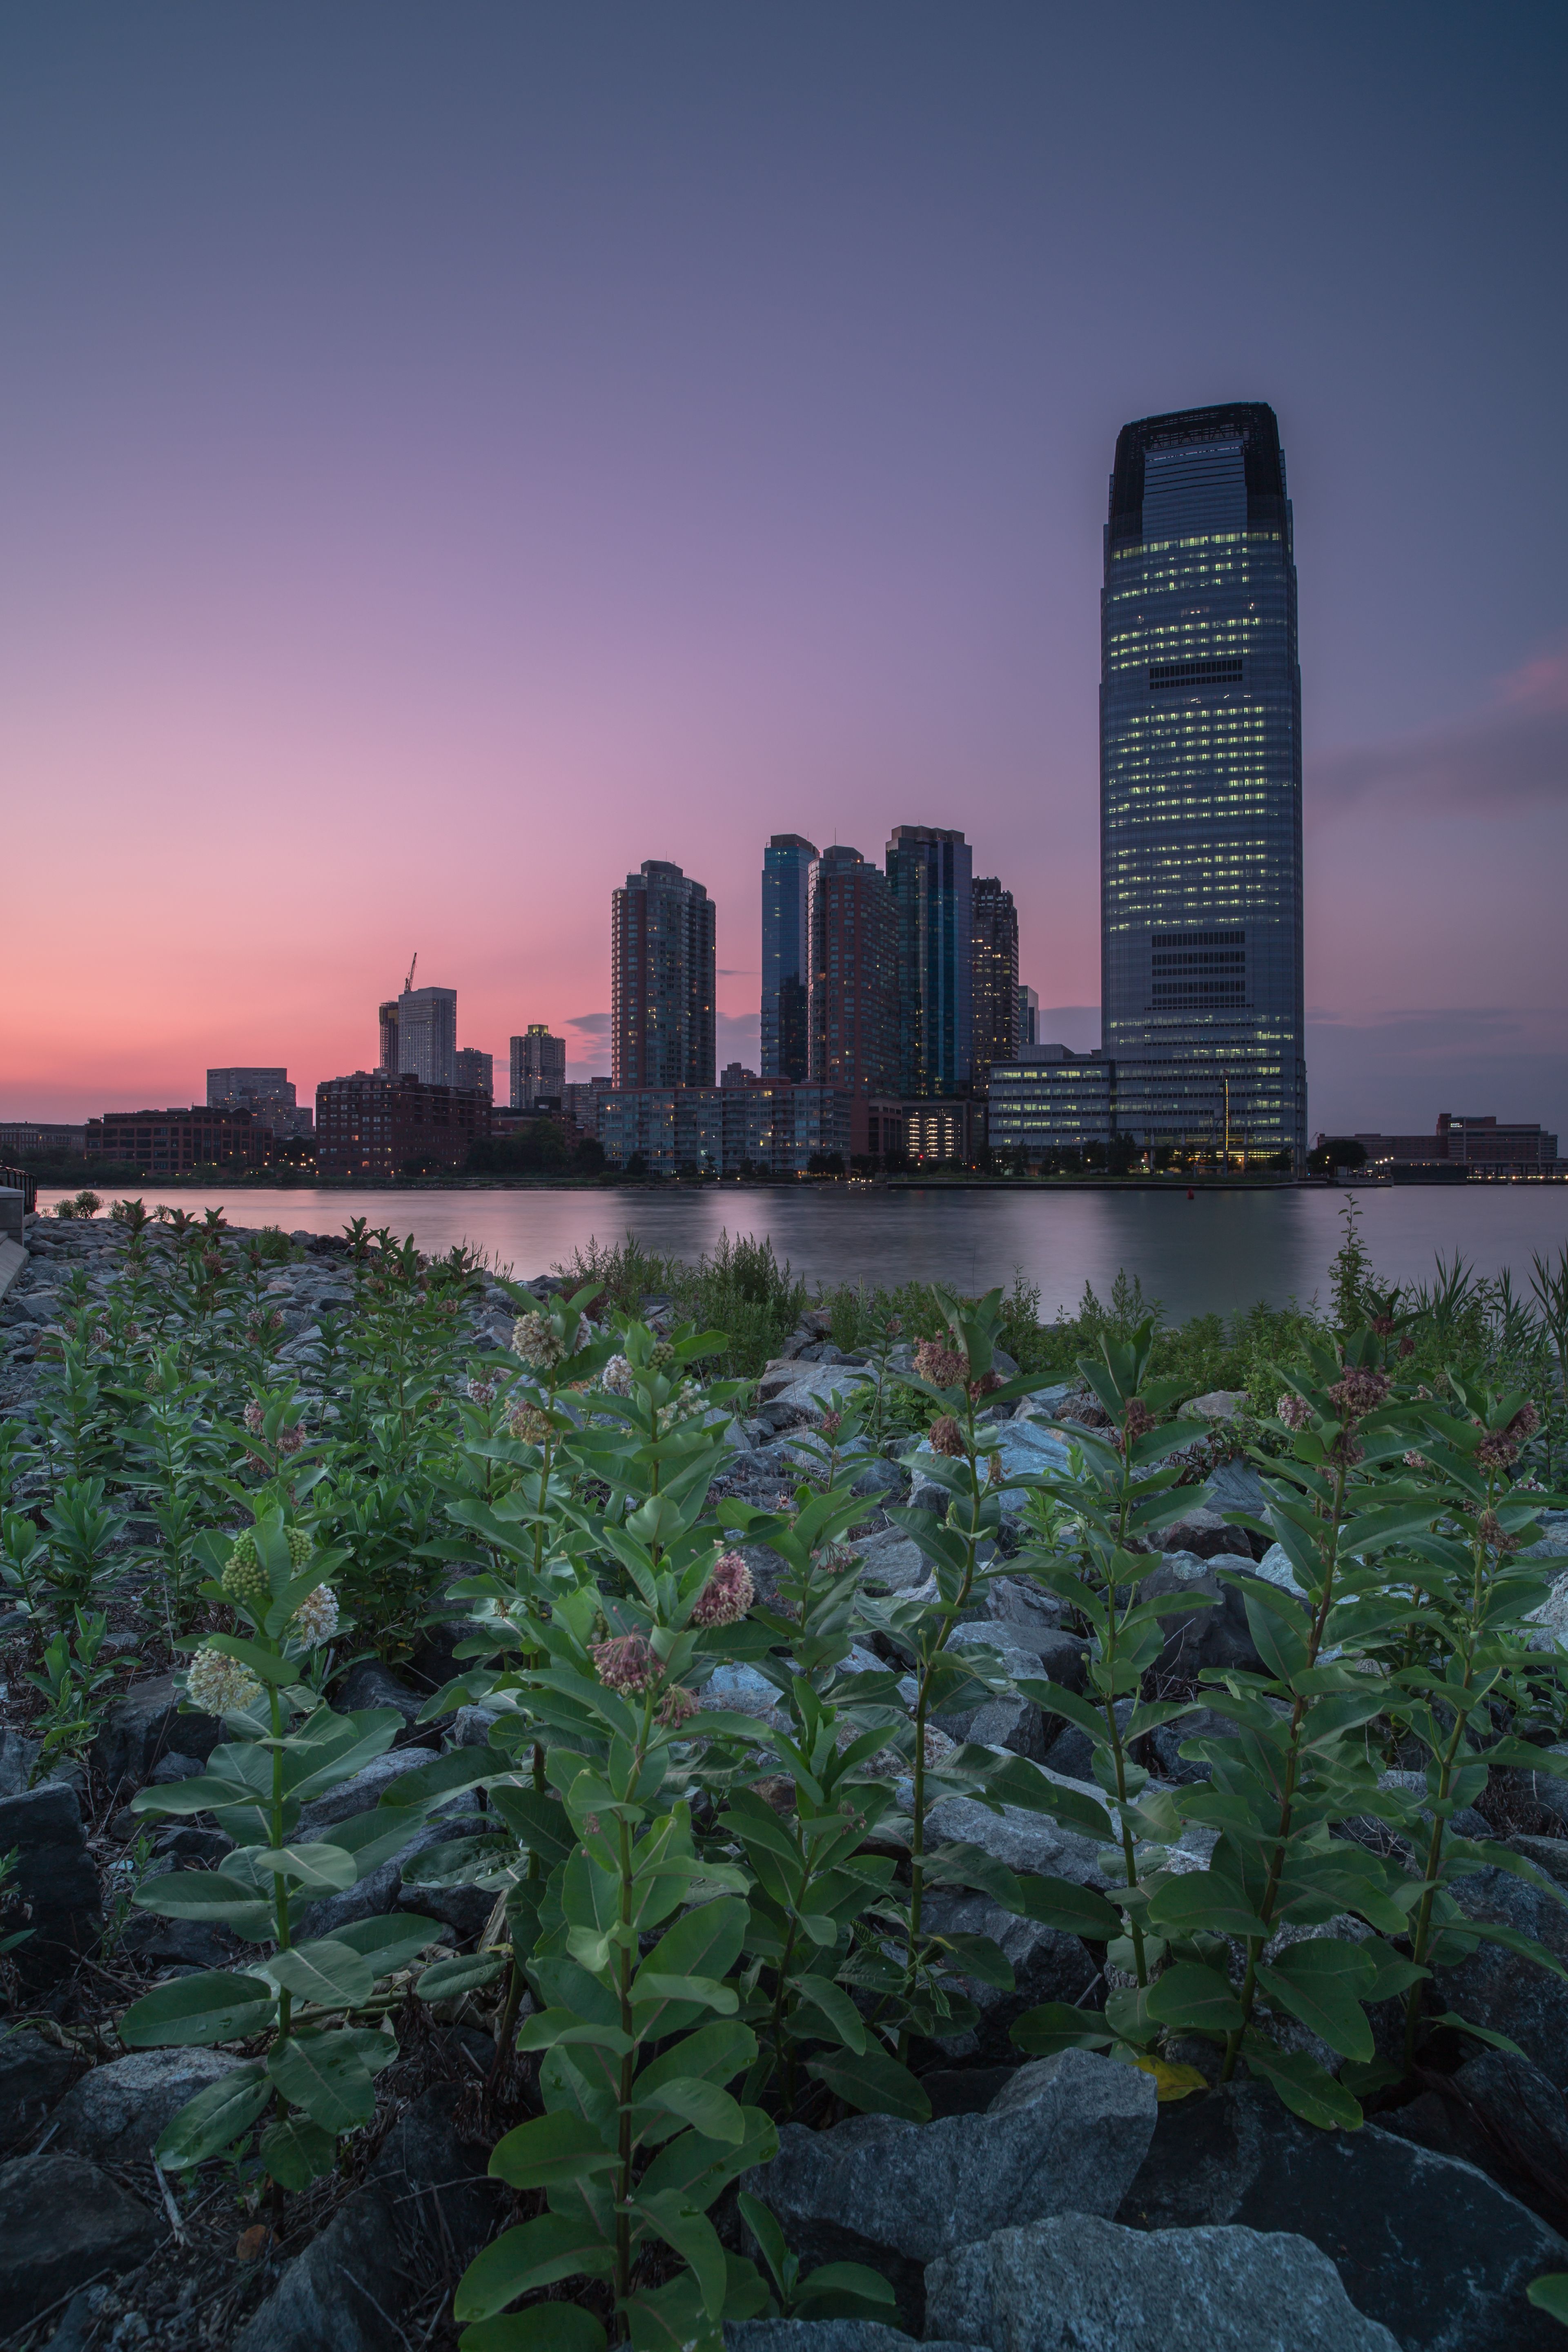 Jersey city during sunset view from flowers example image 1